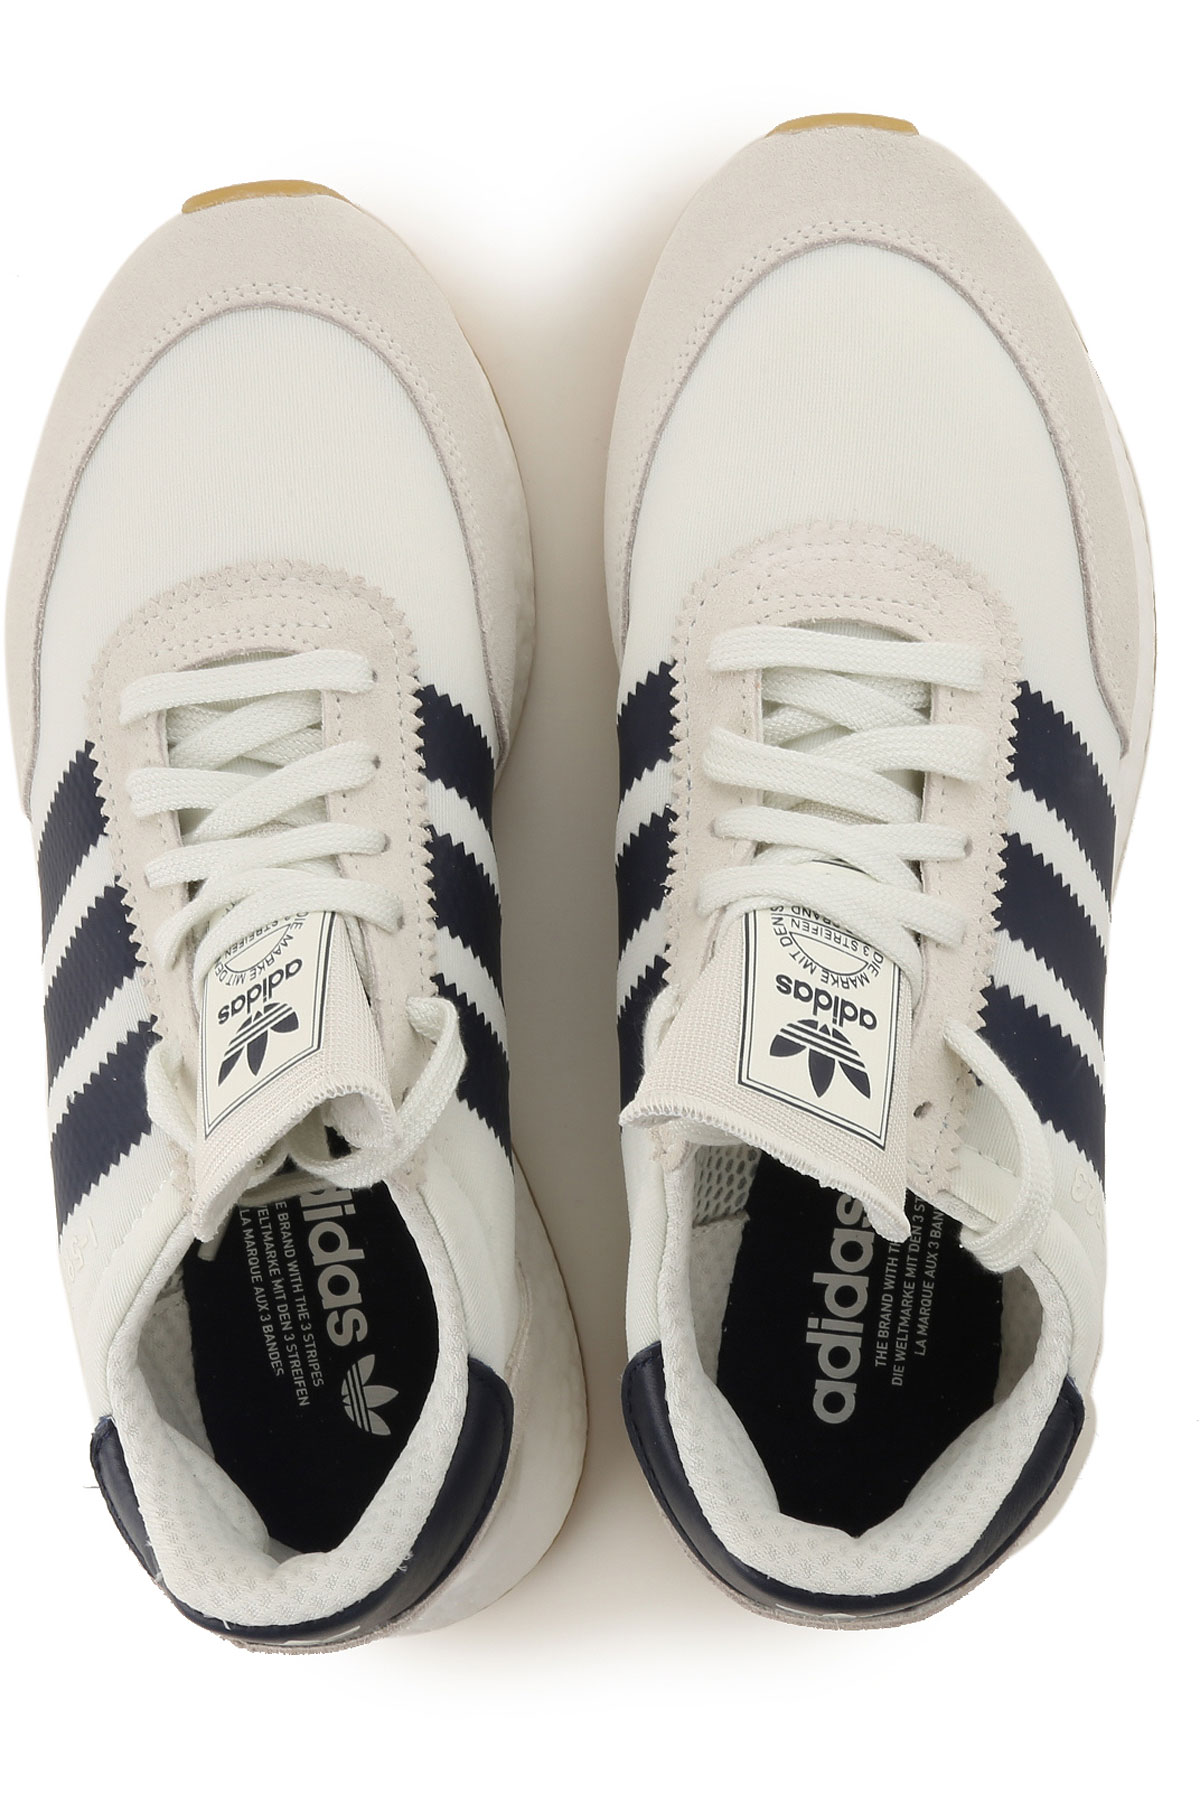 ley Incompetencia Almuerzo  Mens Shoes Adidas, Style code: b37947--